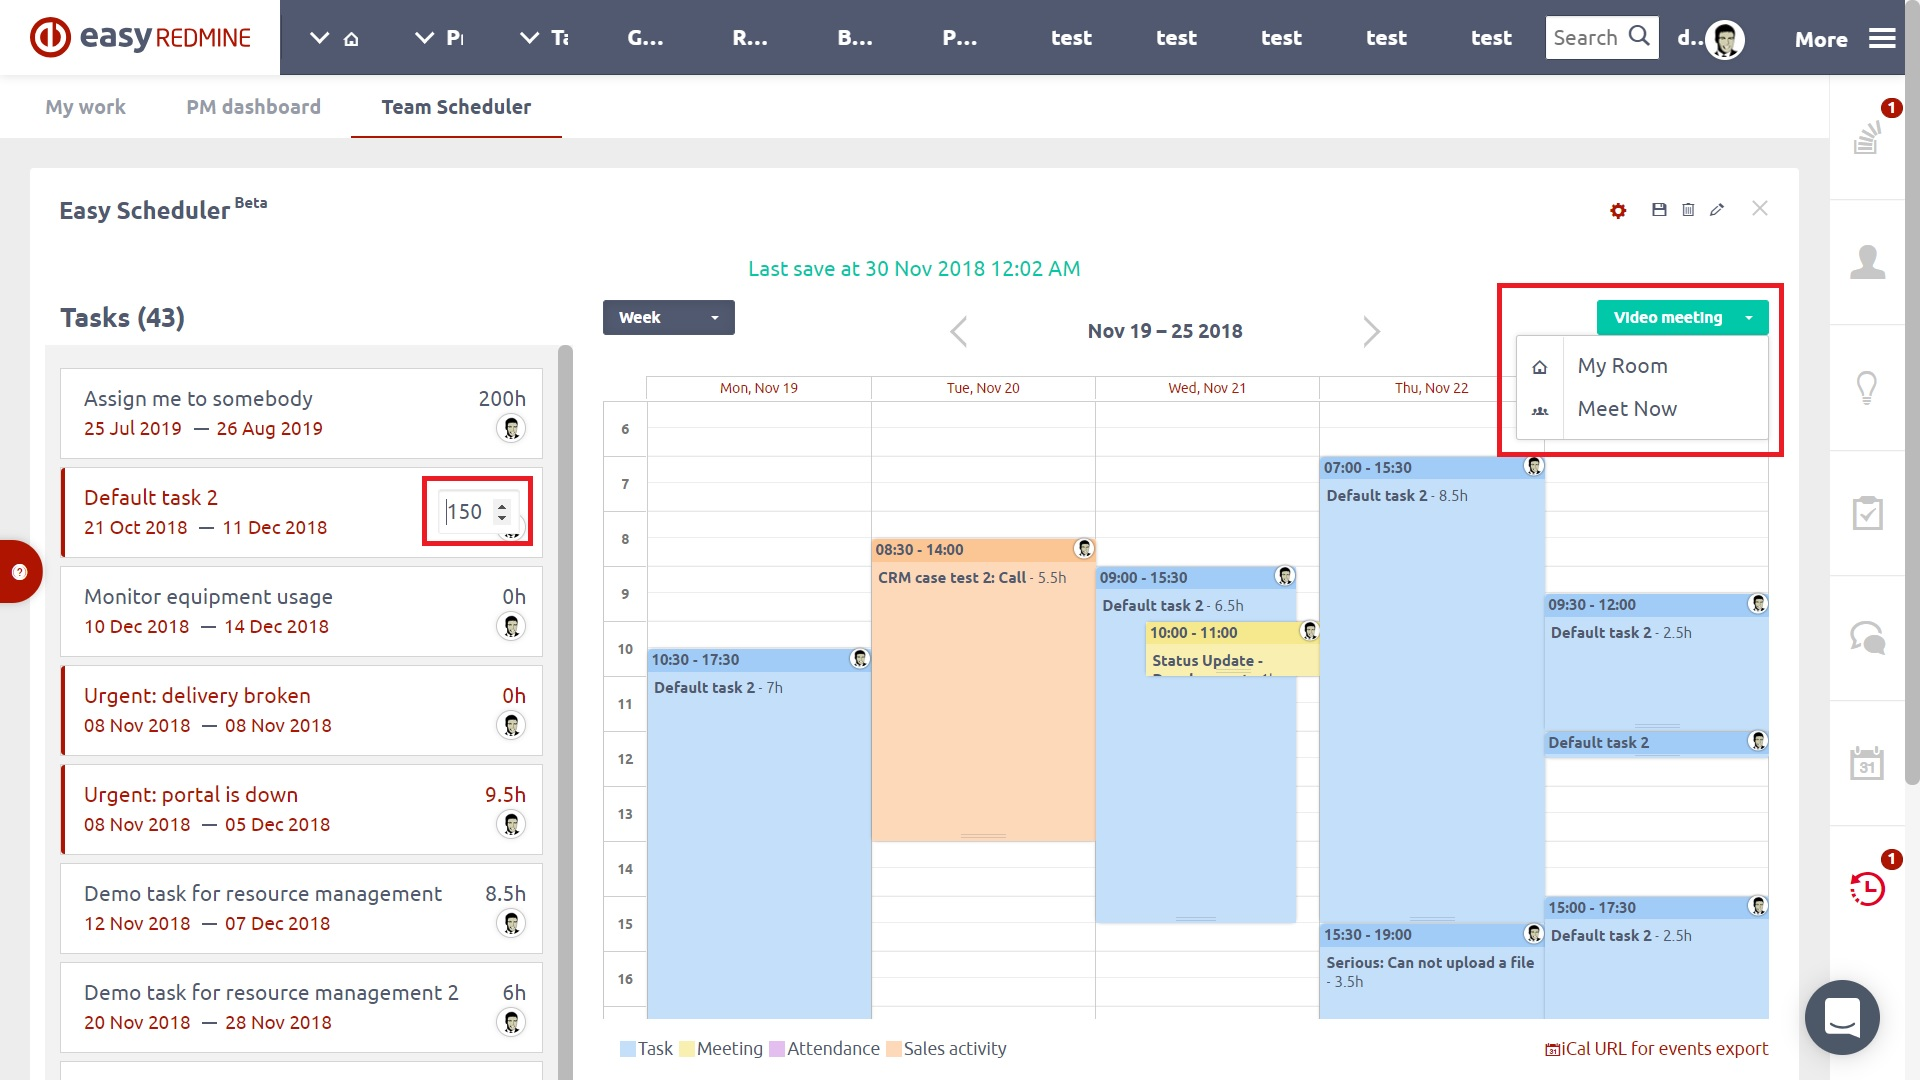 Advanced Project Management - Easy Redmine